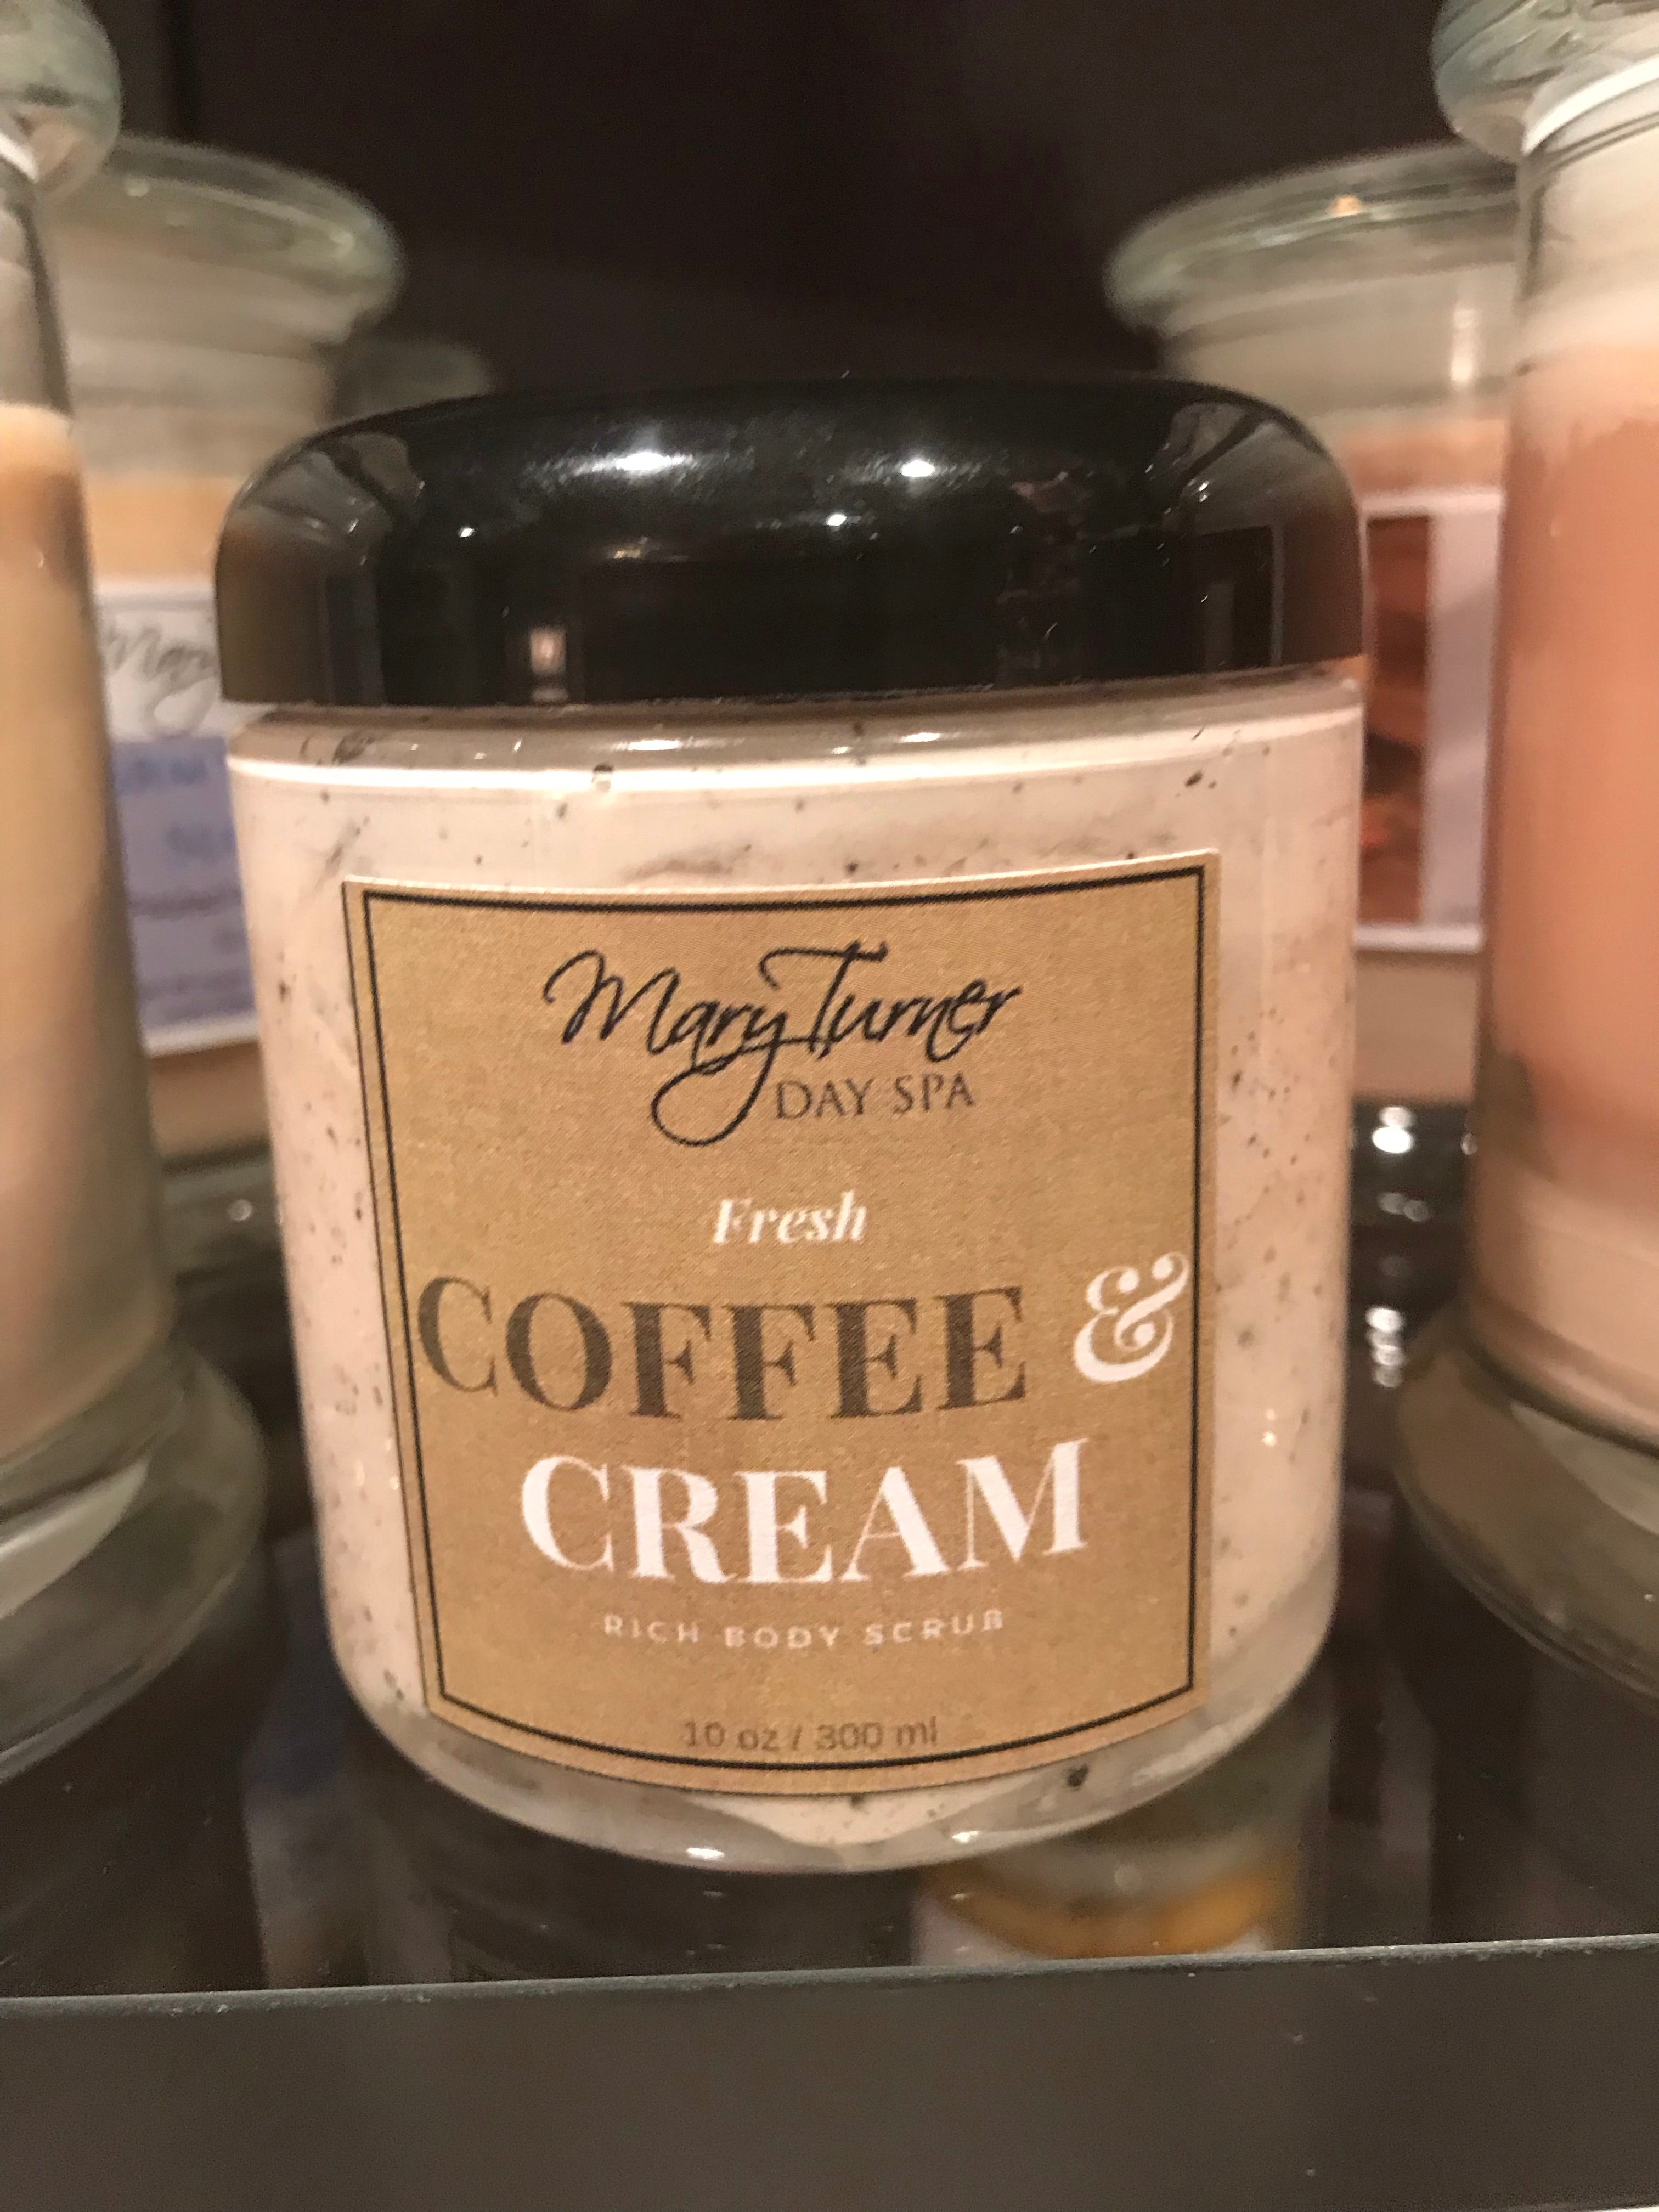 Coffee & Cream Rich Body Scrub - Mary Turner Day Spa & Boutique